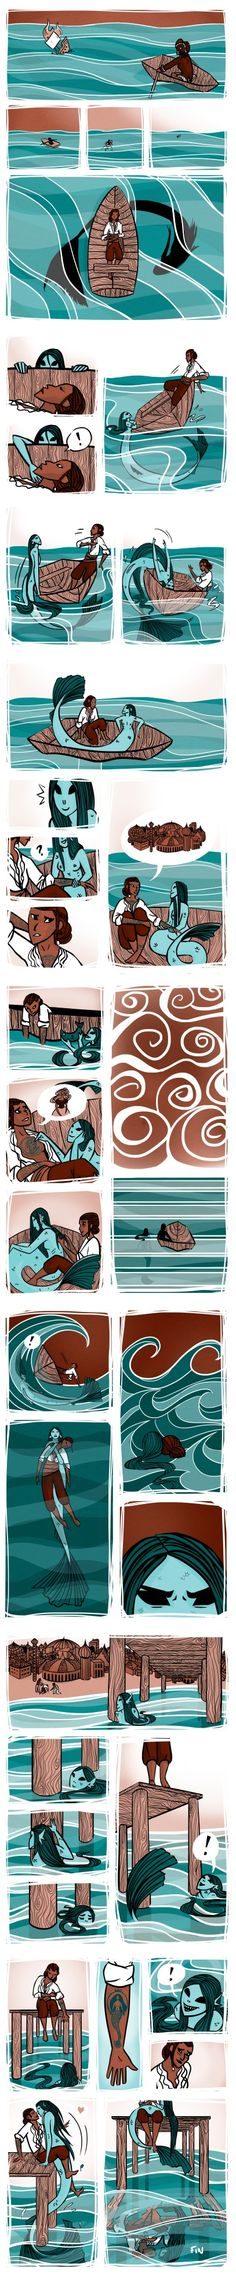 Aww, True love between man and mermaid. - Aww, True love between man and mermaid. Comics Story, Bd Comics, Cute Comics, Cute Stories, Short Stories, Amazing Art, Awesome, Short Comics, Mythical Creatures